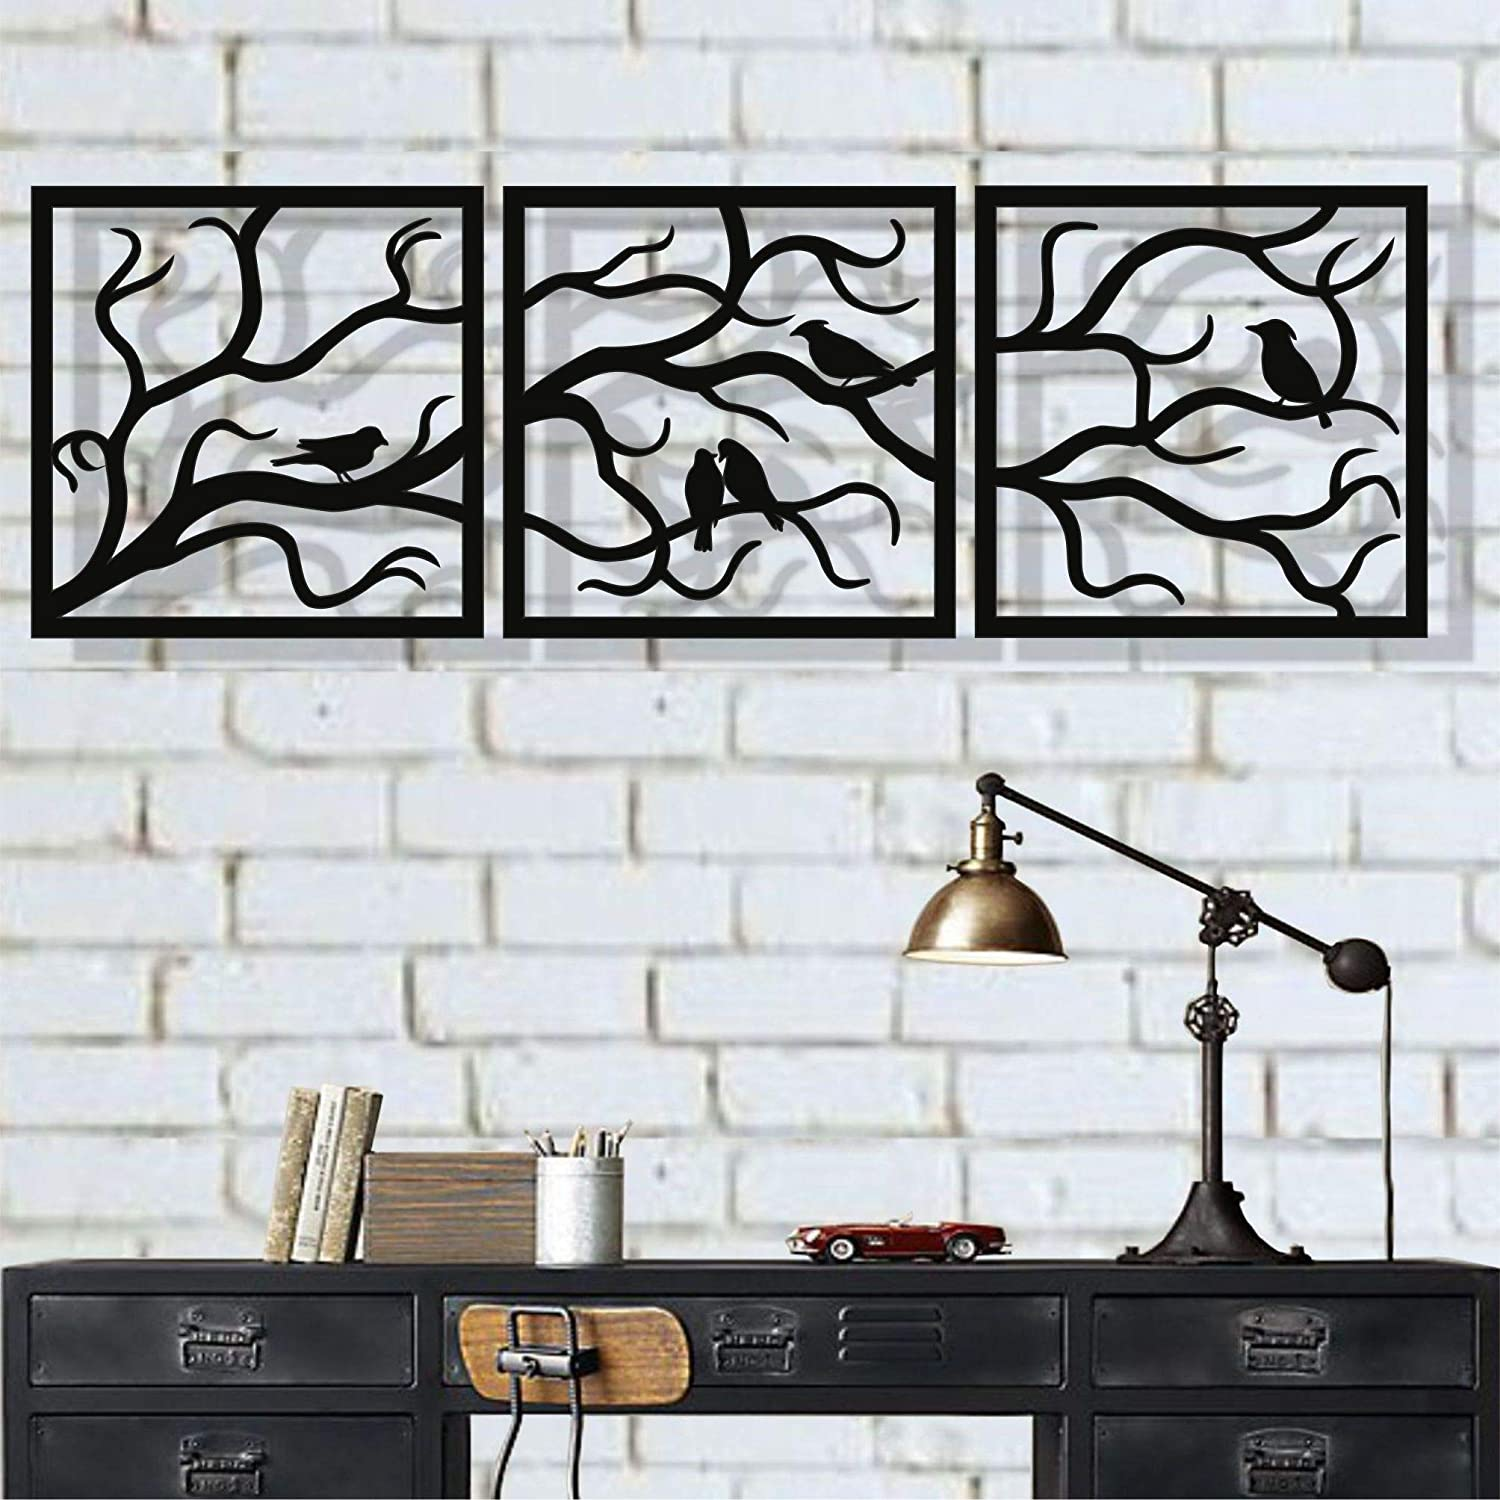 """Metal Wall Art, Birds on Branch 3 Pieces, Metal Tree Wall Art, Tree Sign, Metal Wall Decor, Interior and Outdoor Decoration, 3 Panels Wall Hangings (91""""W x 30""""H / 232x75cm)"""